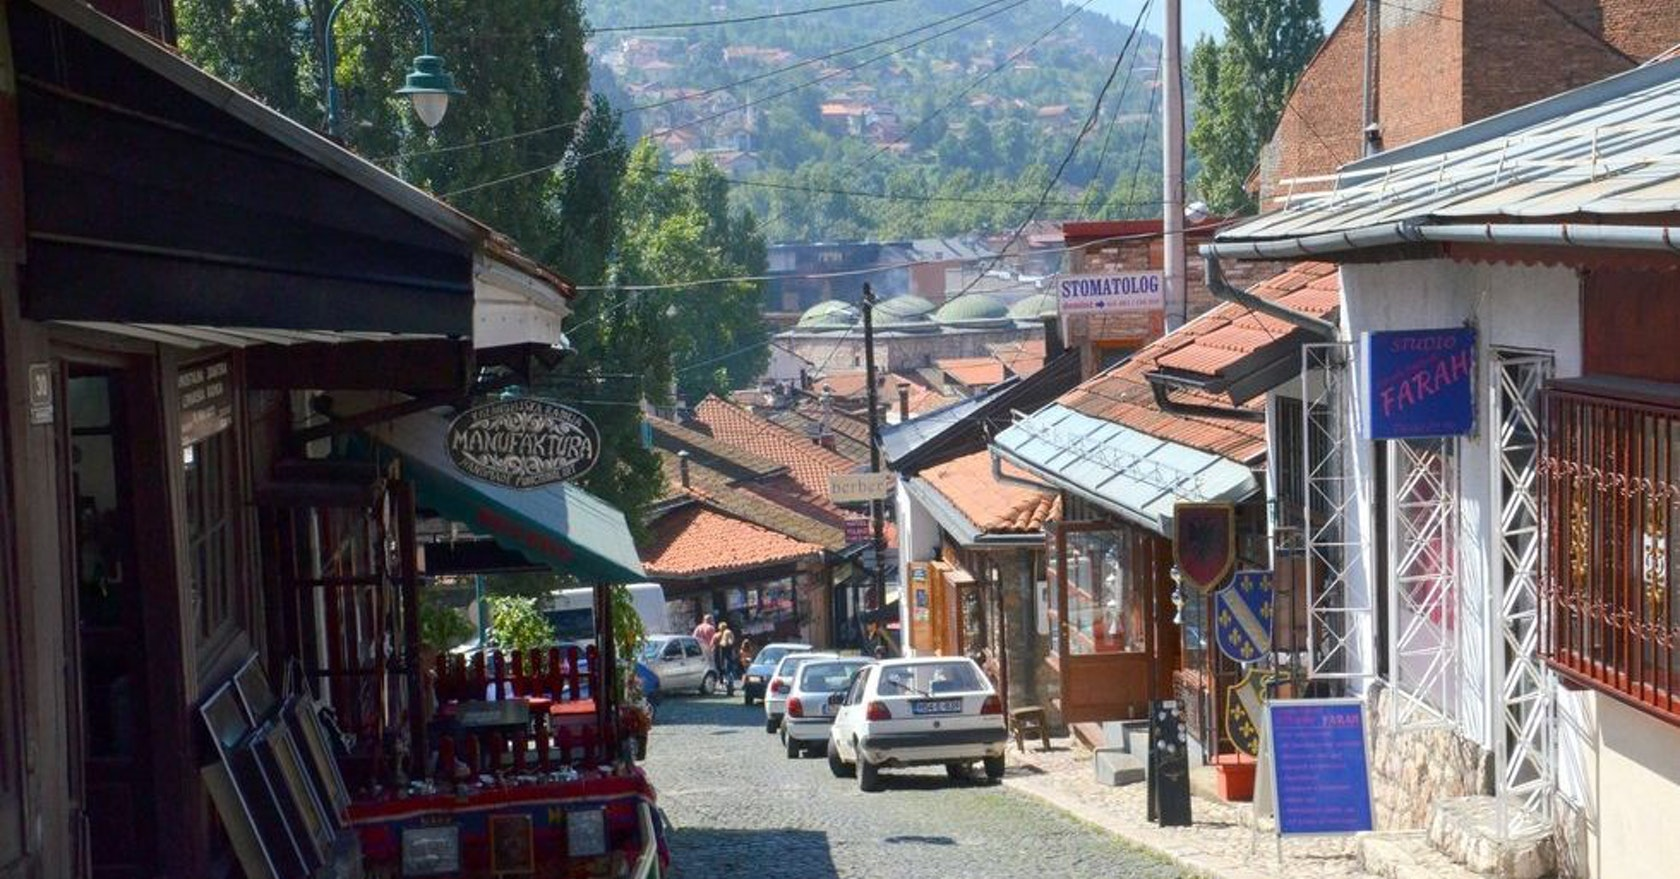 From Sarajevo to Rome, free walking tours in European cities